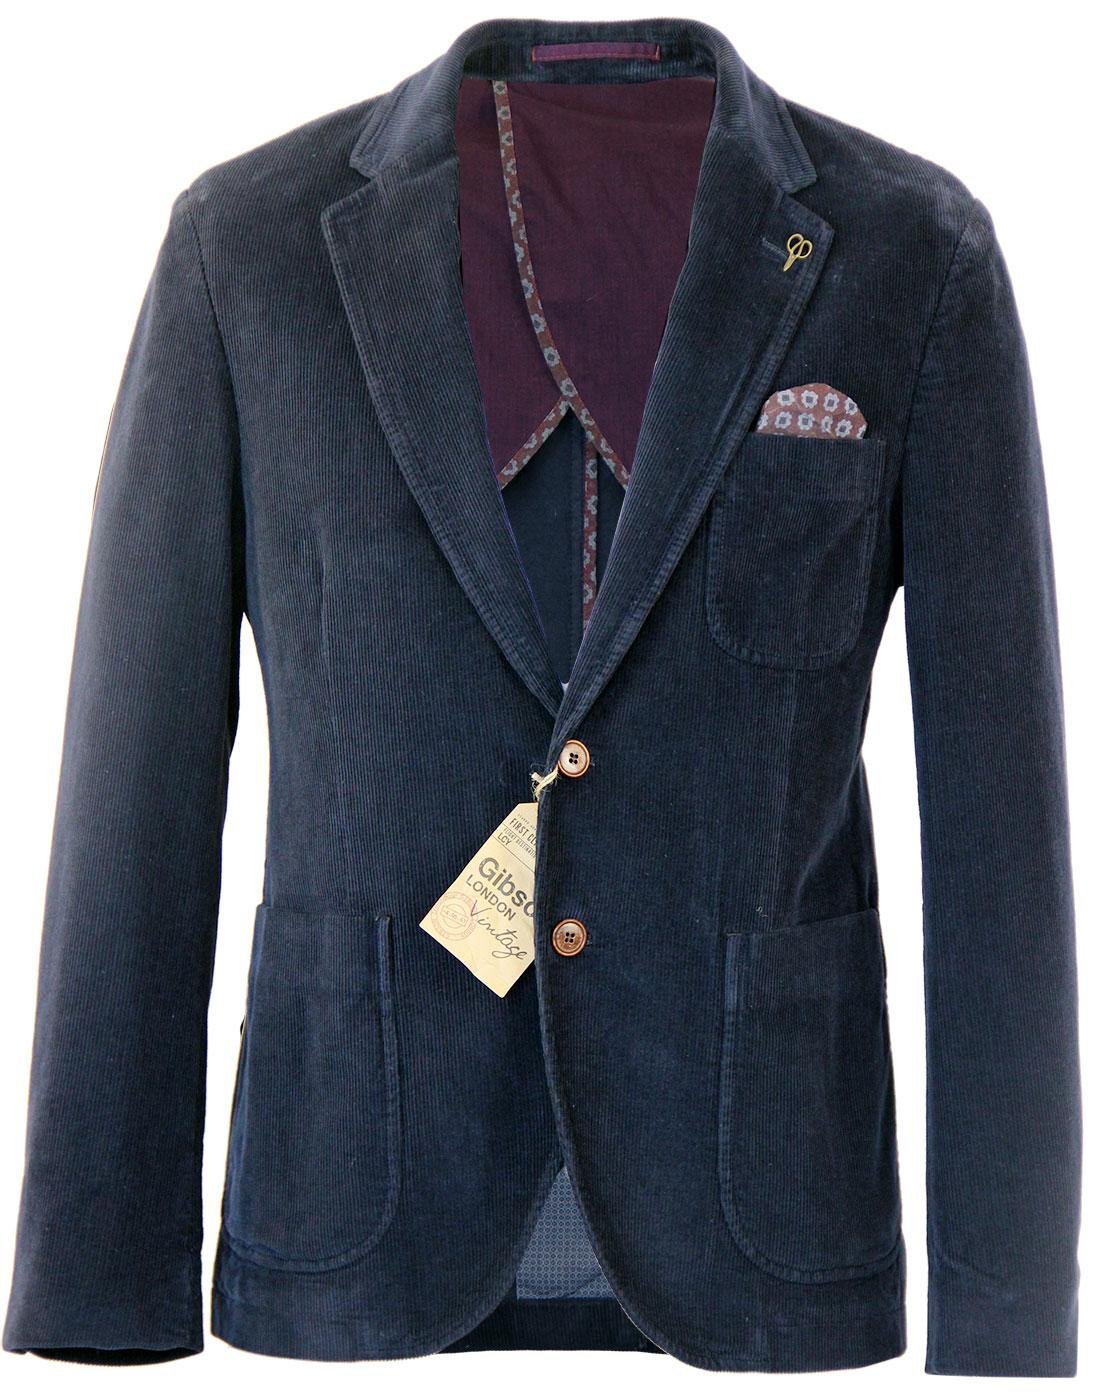 Find great deals on eBay for corduroy blazer. Shop with confidence.